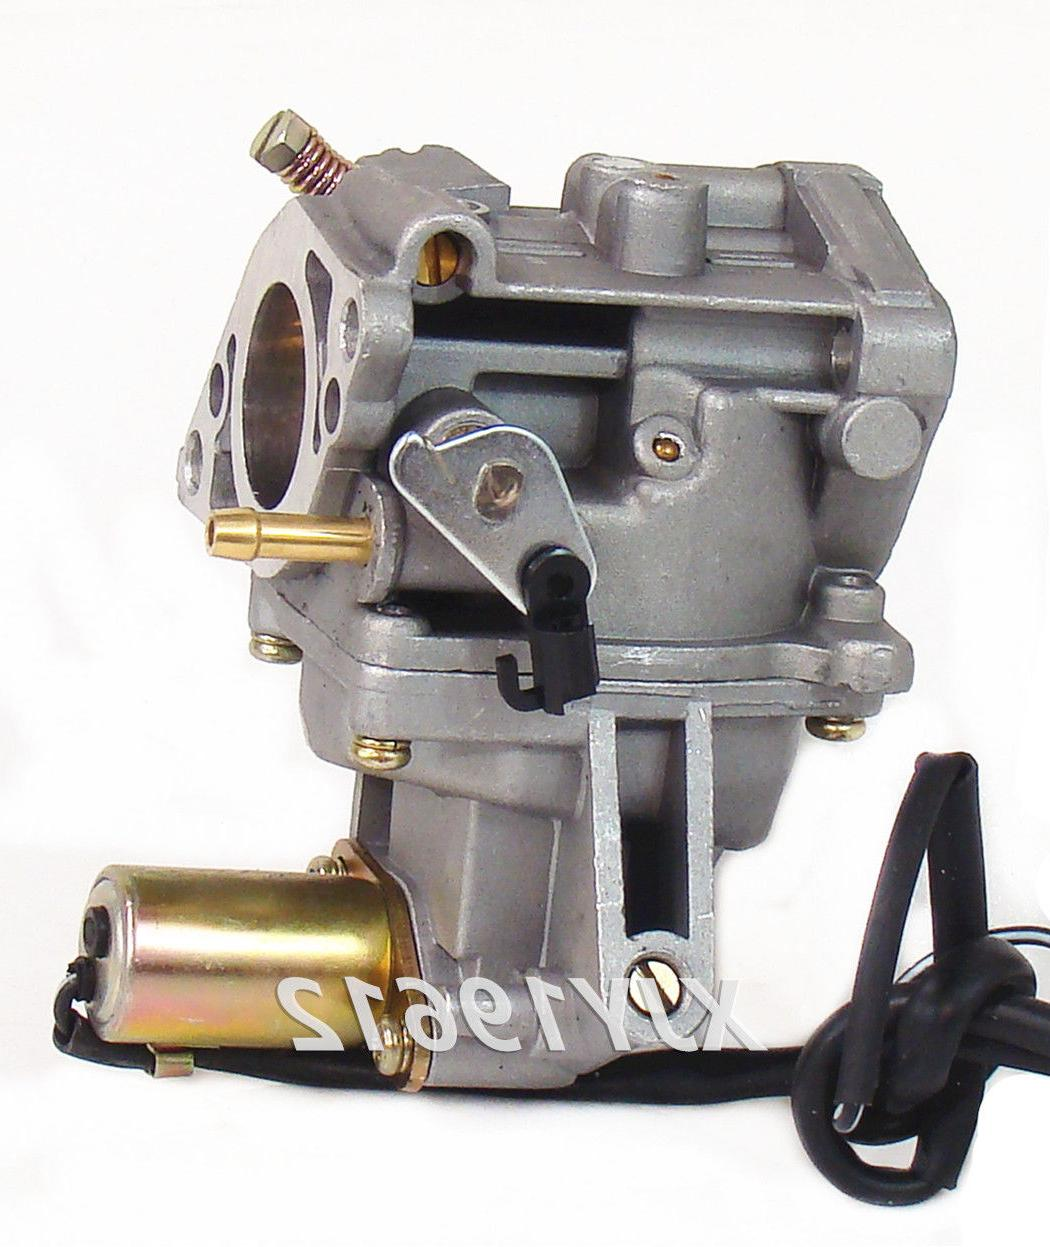 Carburetor & Fuel Honda Mower Engines